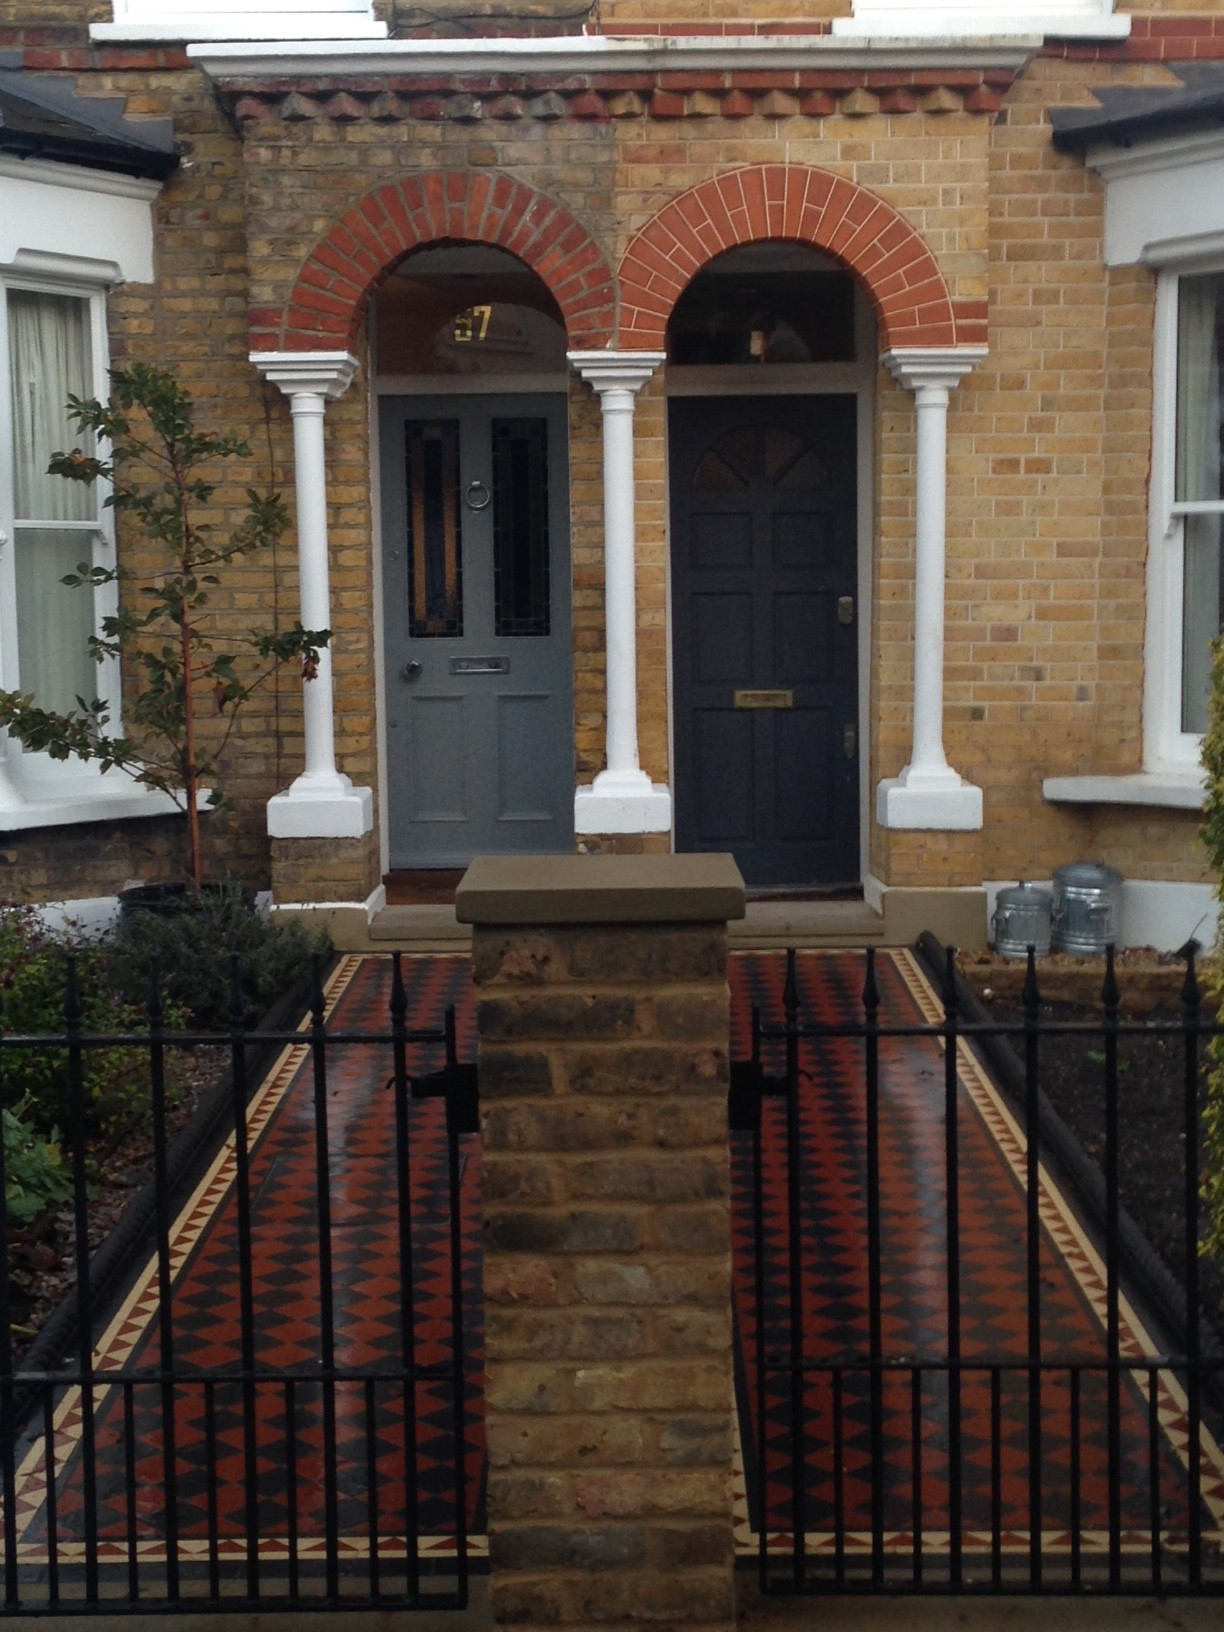 Brixton Herne Hill Victorian Mosaic Tile Path black and red tile with Yorkstone pier cap entrance stone and imperial yellow brick london stock wall (17)